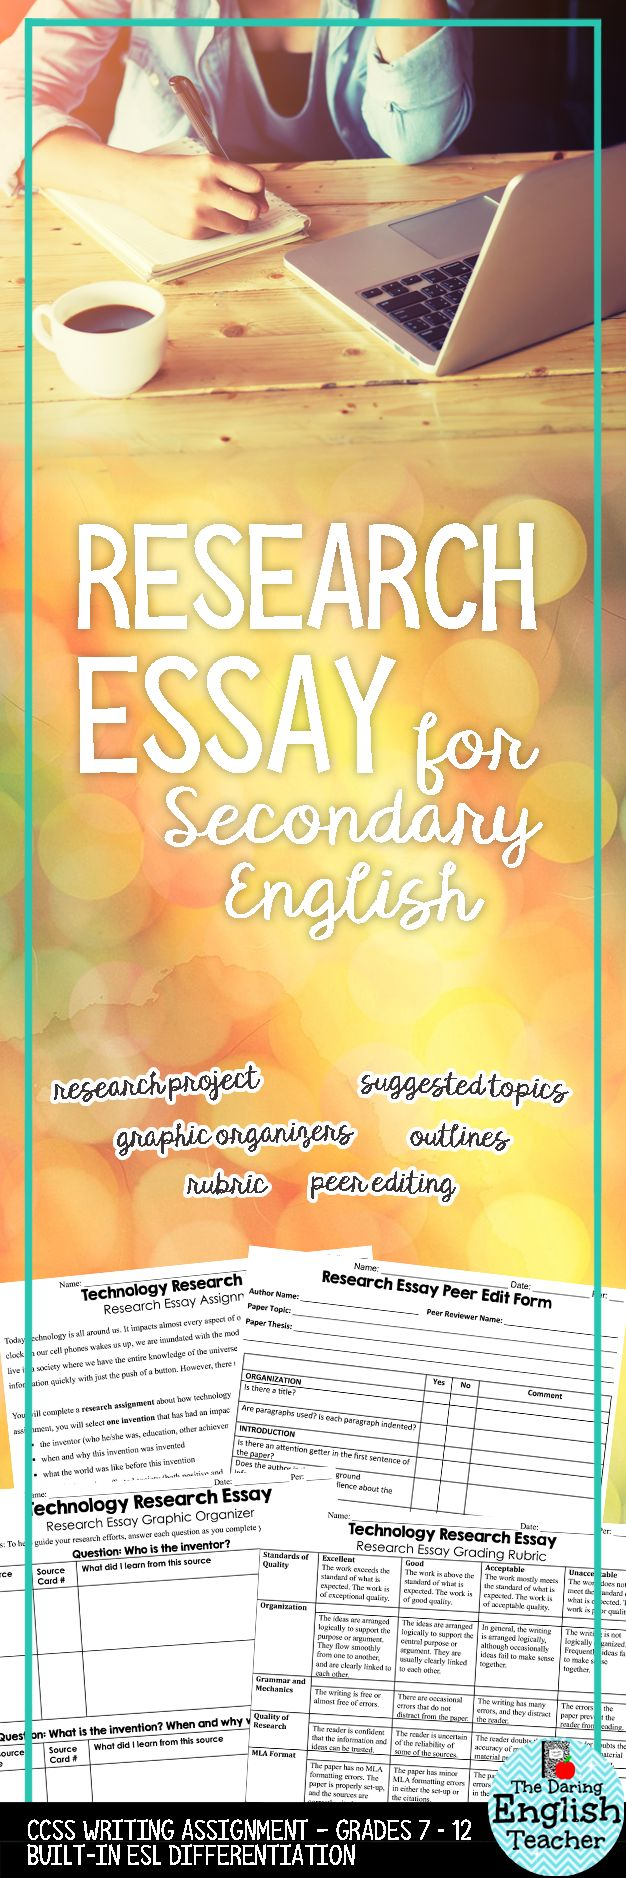 Research writing is an integral part of secondary ELA classes. This research essay assignment includes the research topic, brainstorming graphic organizers, peer editing, and a rubric.